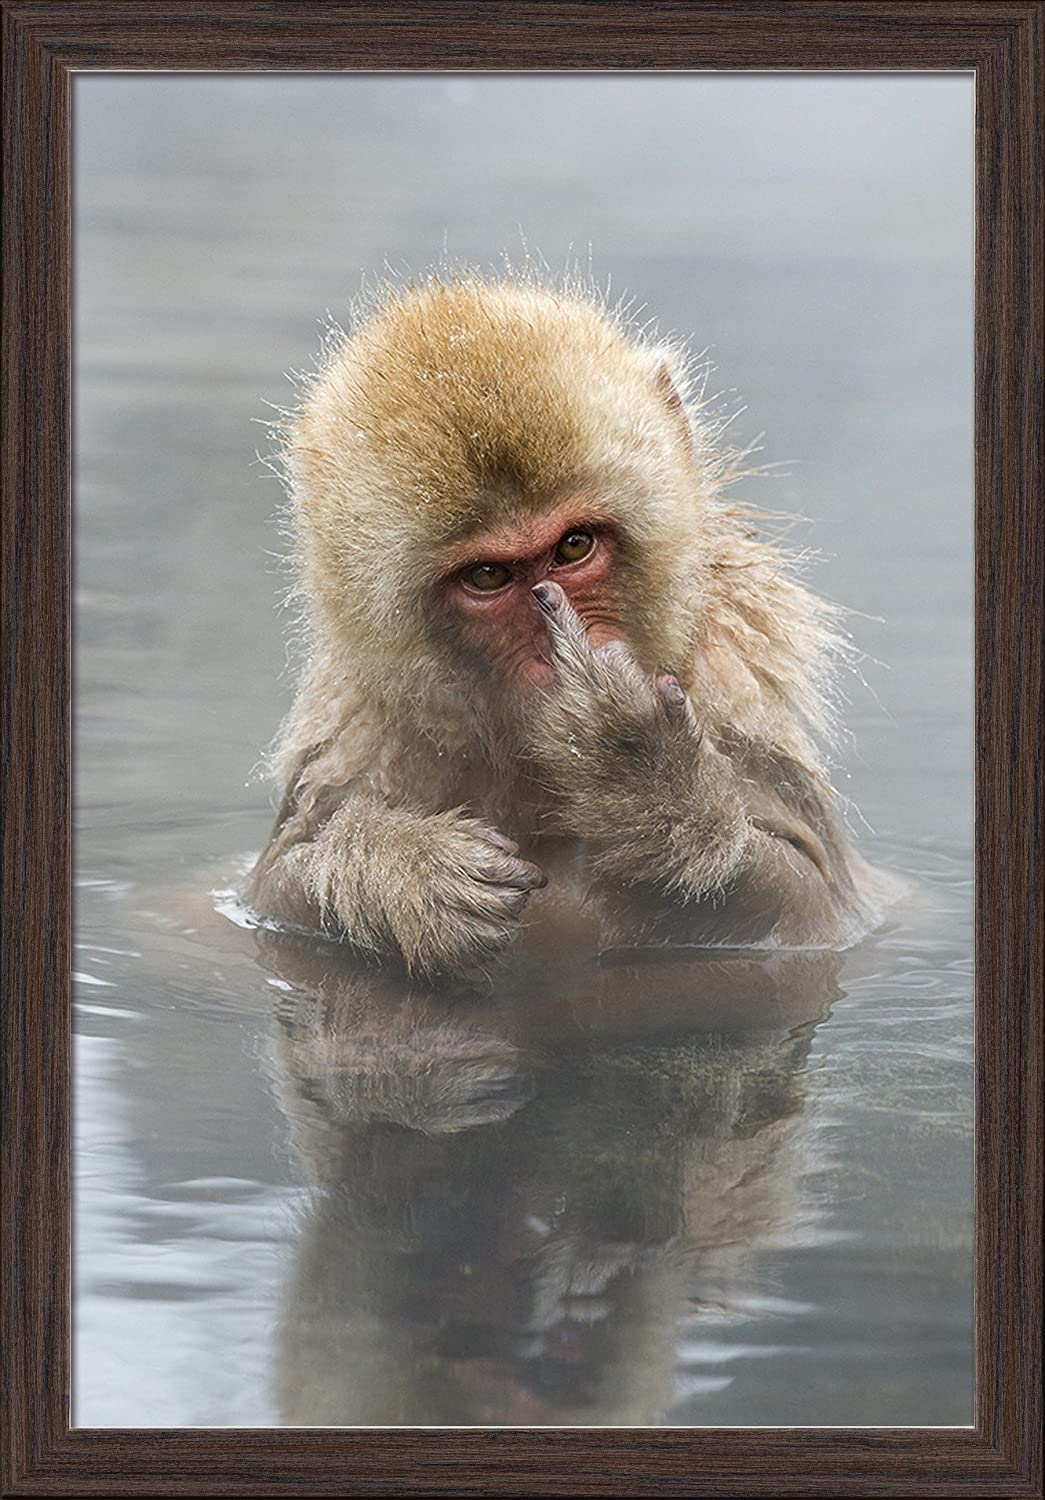 24x36 Giclee Art Print, Gallery Framed, White Wood Japanese Macaque Monkey Showing Middle Finger